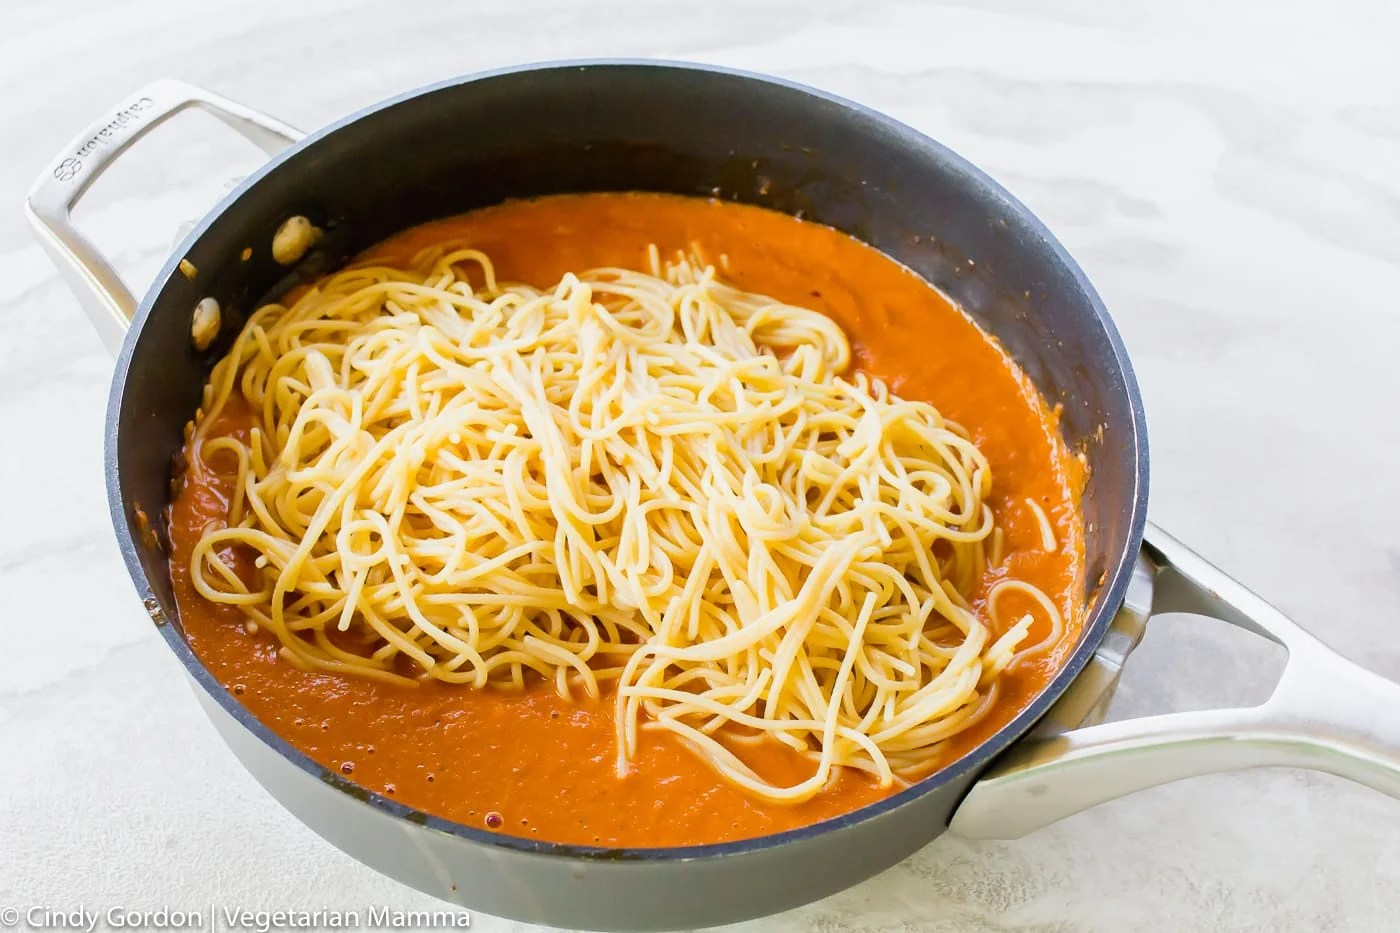 picture of sauce in skillet with cooked pasta on top, unmixed.